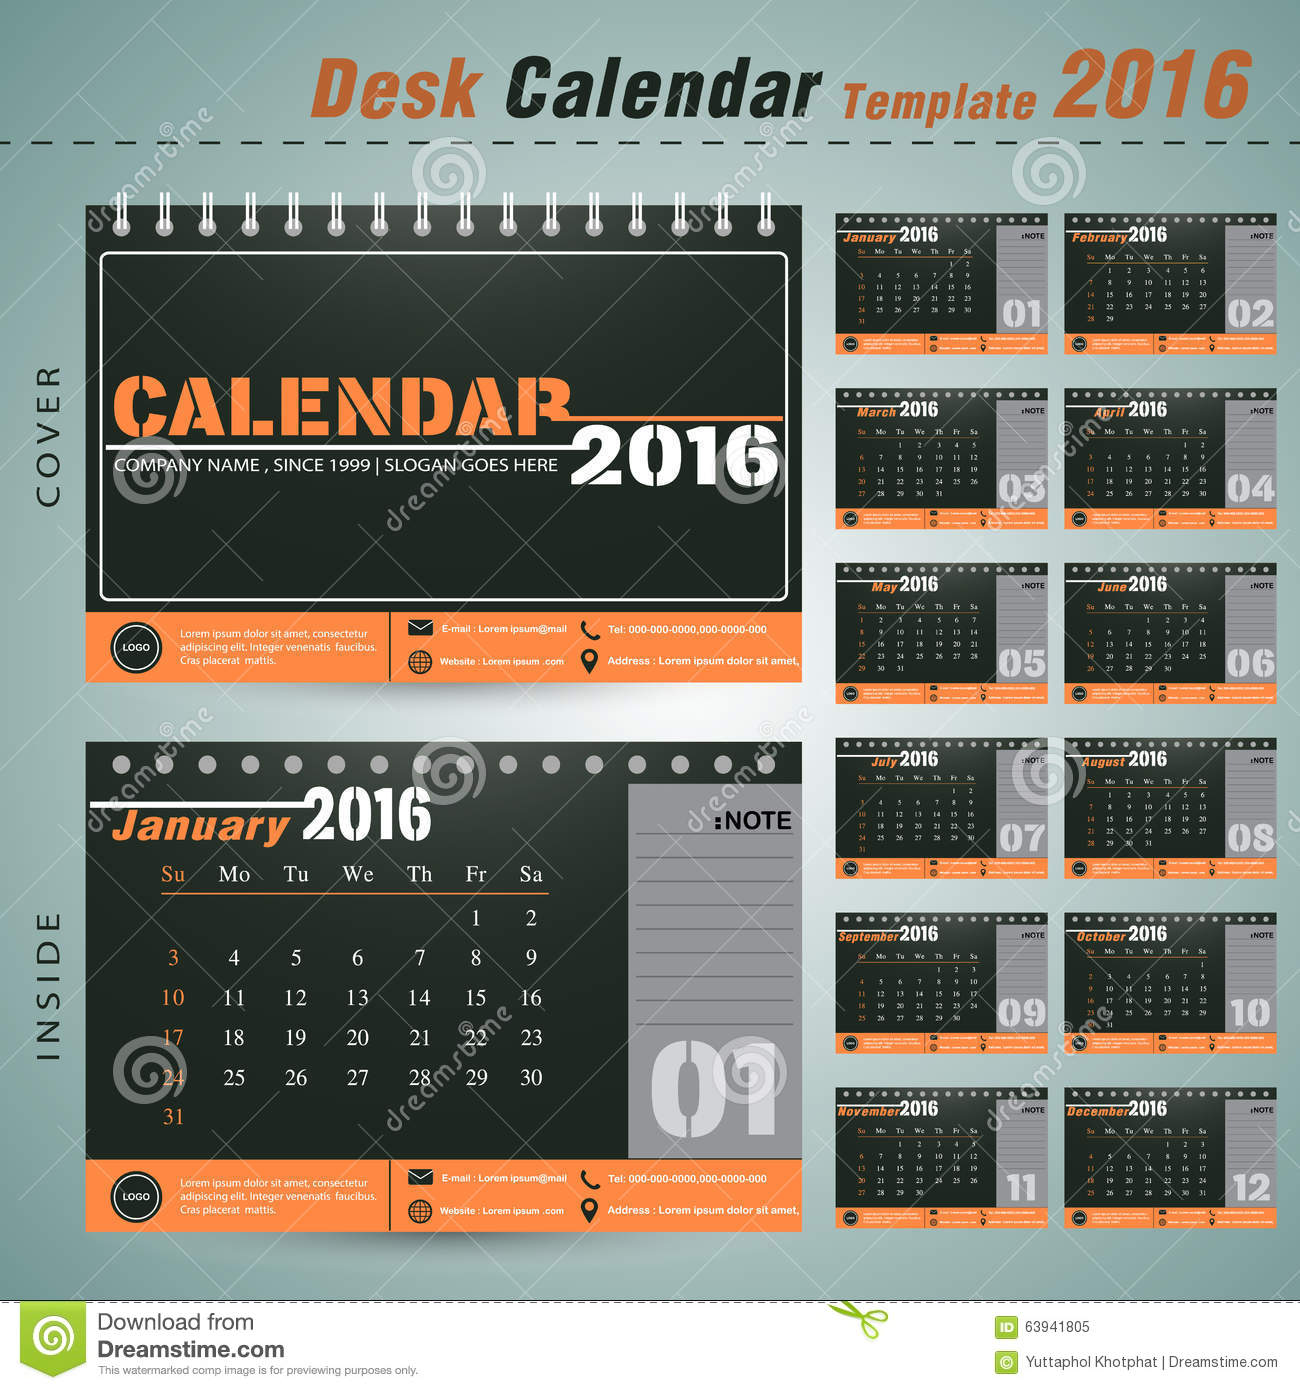 Business Calendar Design : Desk calendar vector design template for new yea